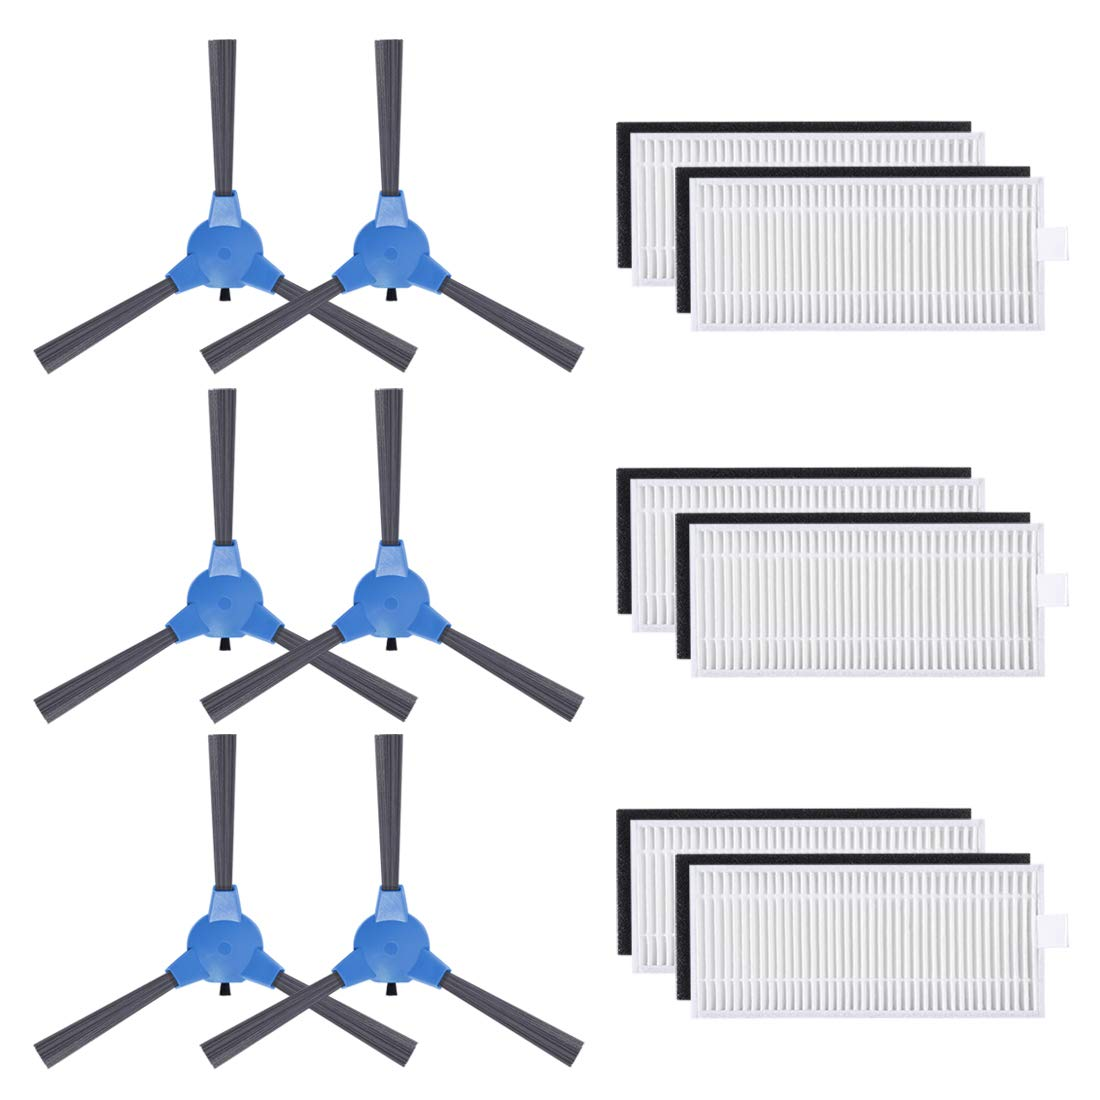 Replacement Parts Filters Side Brushes Compatible for Boost IQ RoboVac 11S, RoboVac 30, RoboVac 30C, RoboVac 15C, RoboVac 12, RoboVac 35C Robotic Vacuums Accessories (Pack of 12)